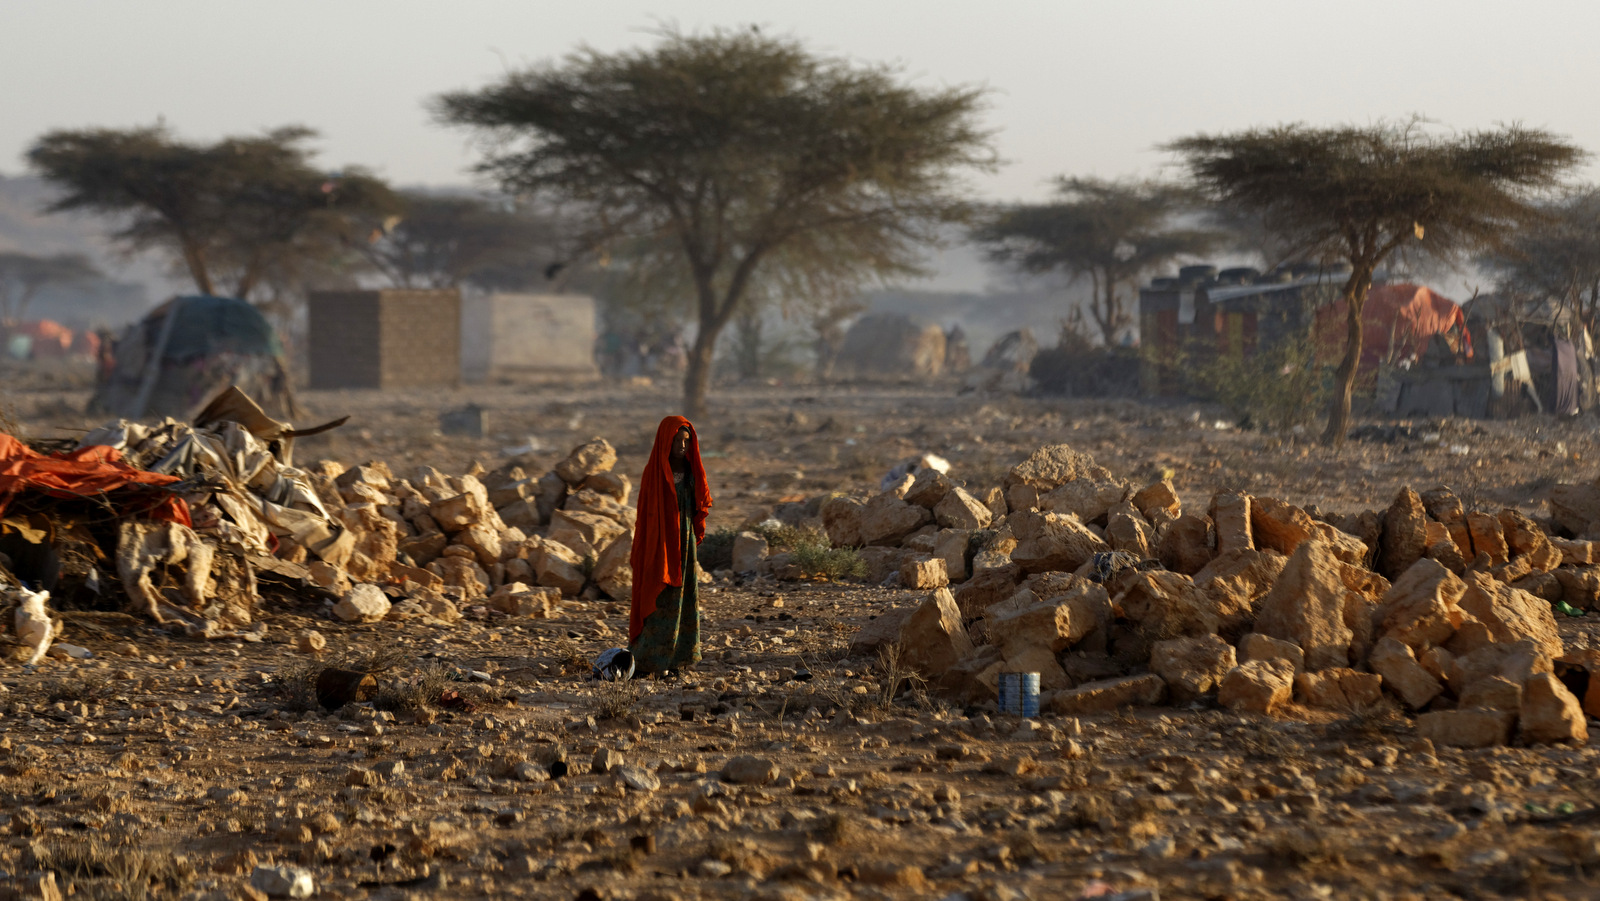 A Somali woman walks through a camp of people displaced from their homes elsewhere in the country by the drought, shortly after dawn in Qardho, Somalia Thursday, March 9, 2017. (AP/Ben Curtis)